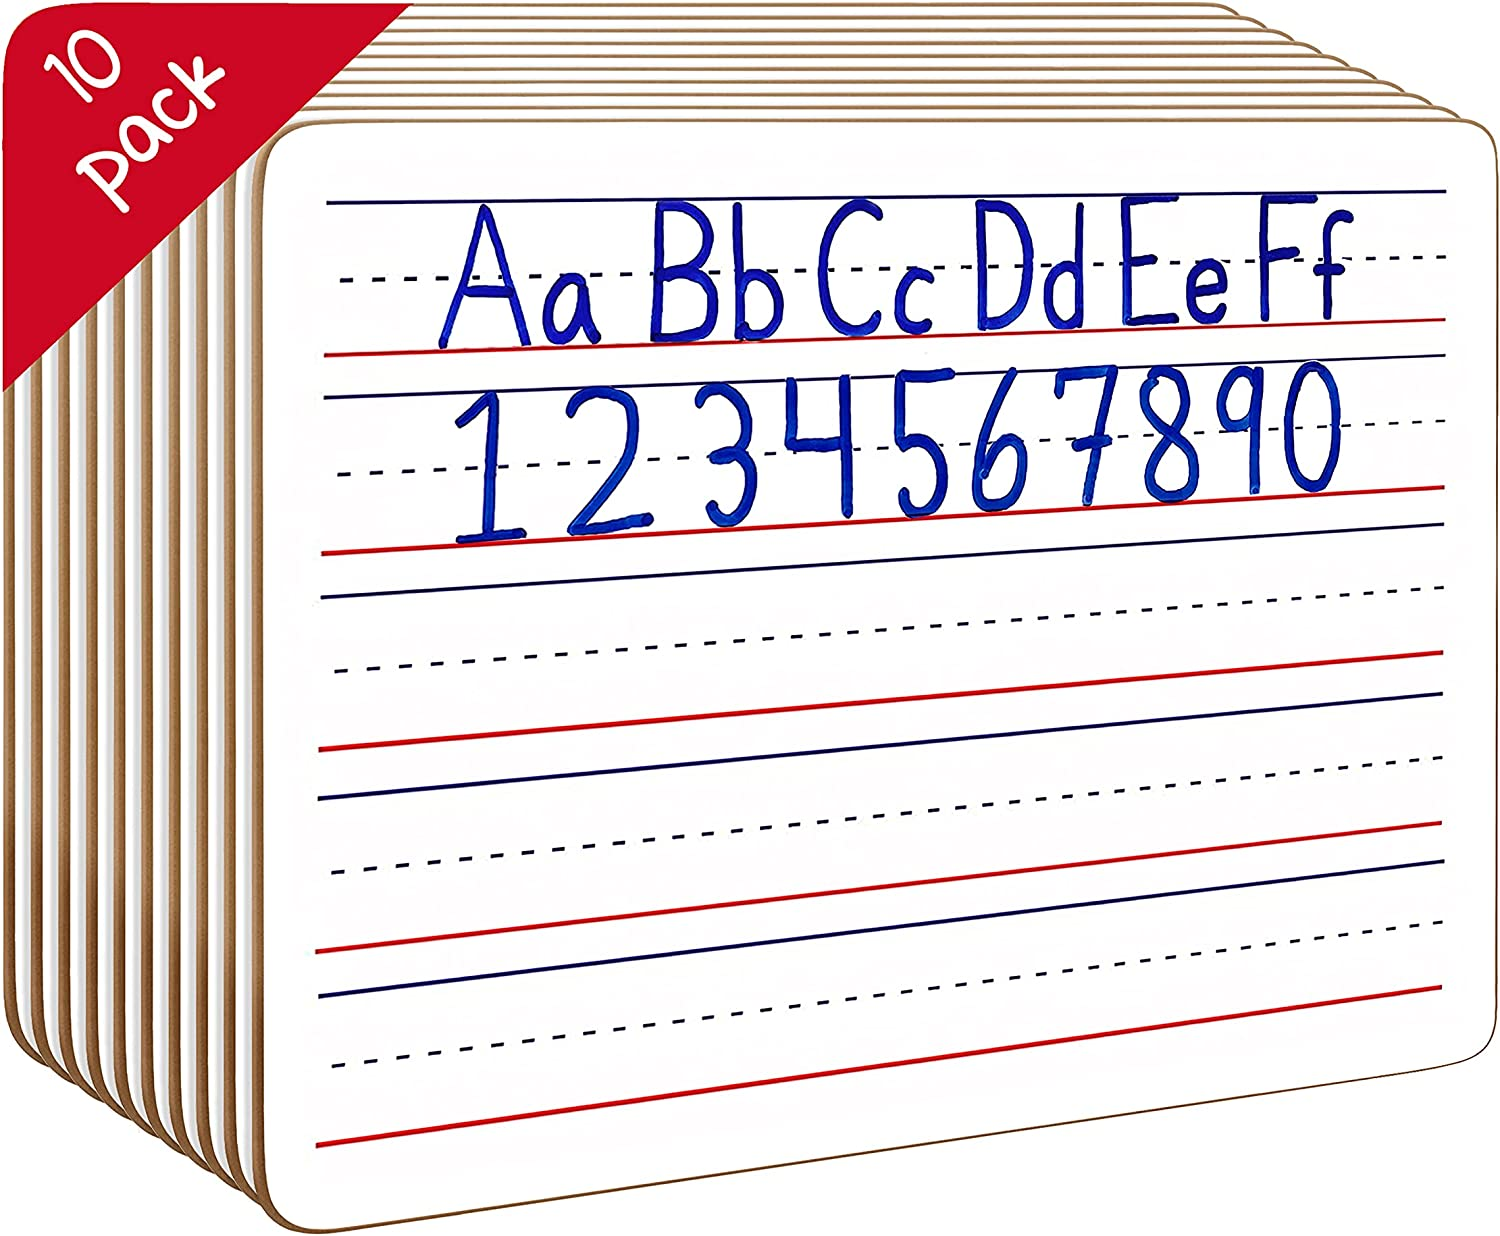 10 Pack Dry Erase High quality new Ruled Whiteboards l Boa inch White 9 Ranking TOP11 X12 Lined